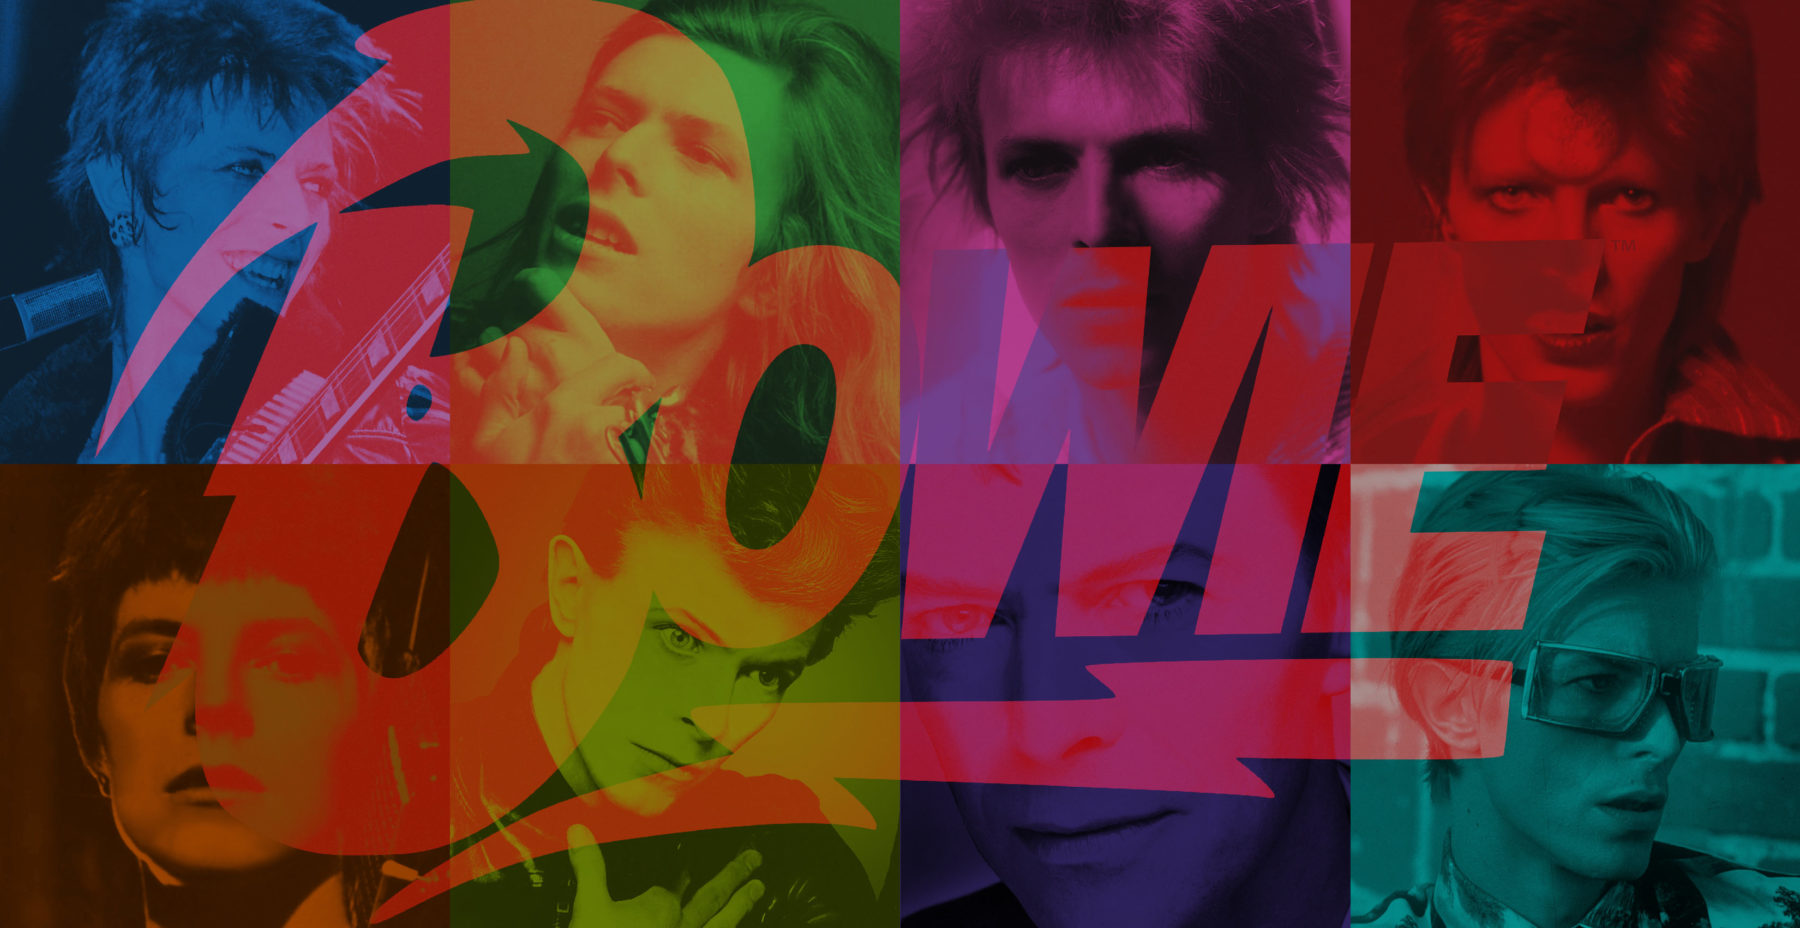 david bowie, epic rights, music, licensing